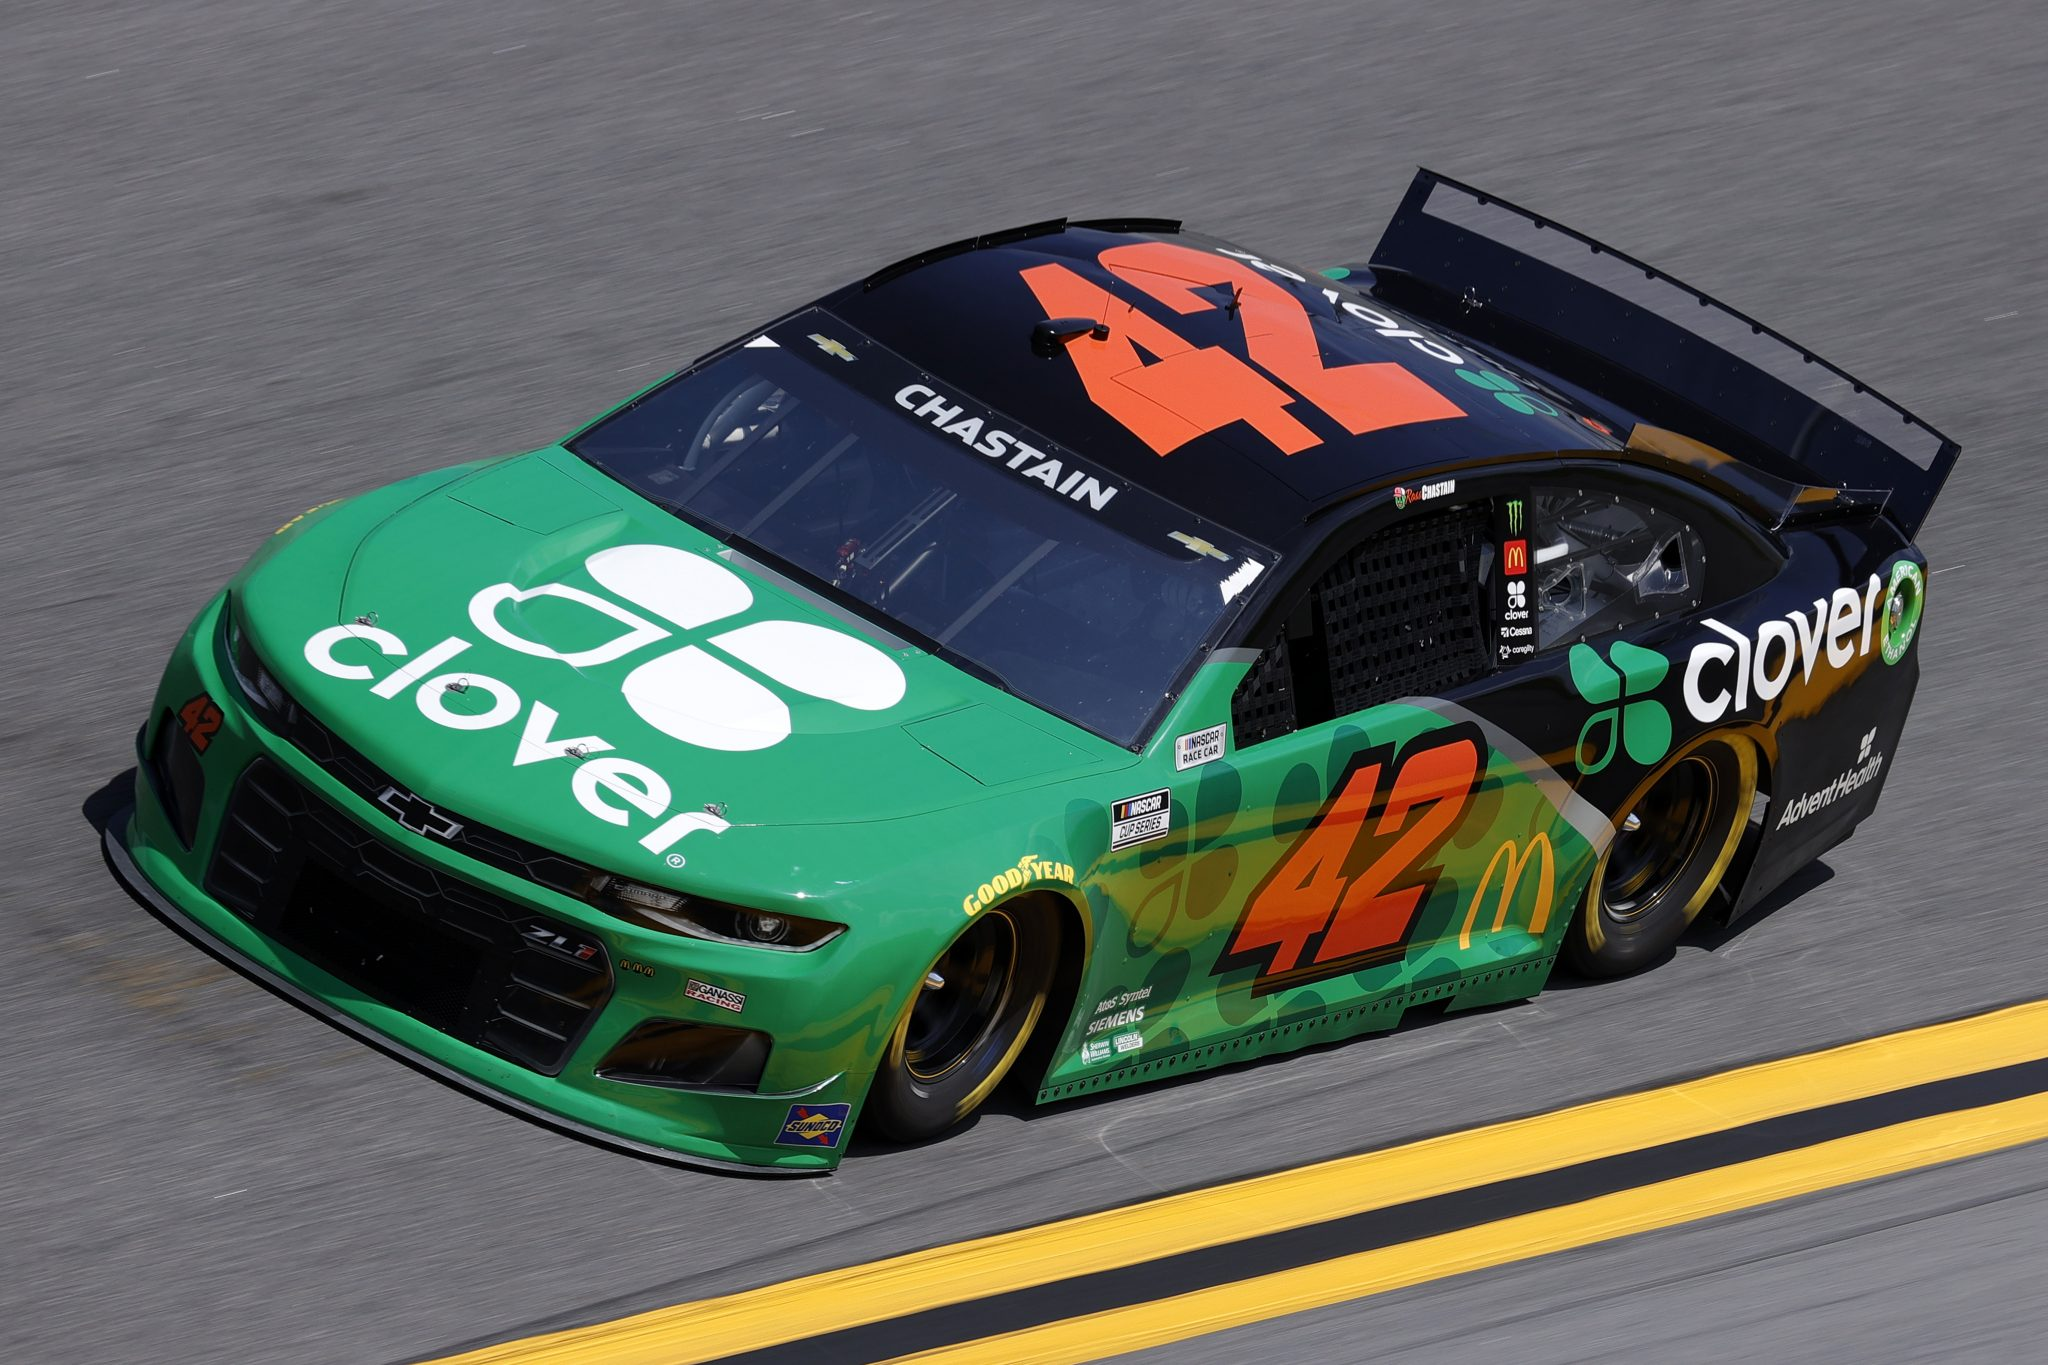 DAYTONA BEACH, FLORIDA - FEBRUARY 10: Ross Chastain, driver of the #42 Clover Chevrolet, drives during practice for the NASCAR Cup Series 63rd Annual Daytona 500 at Daytona International Speedway on February 10, 2021 in Daytona Beach, Florida. (Photo by Jared C. Tilton/Getty Images) | Getty Images